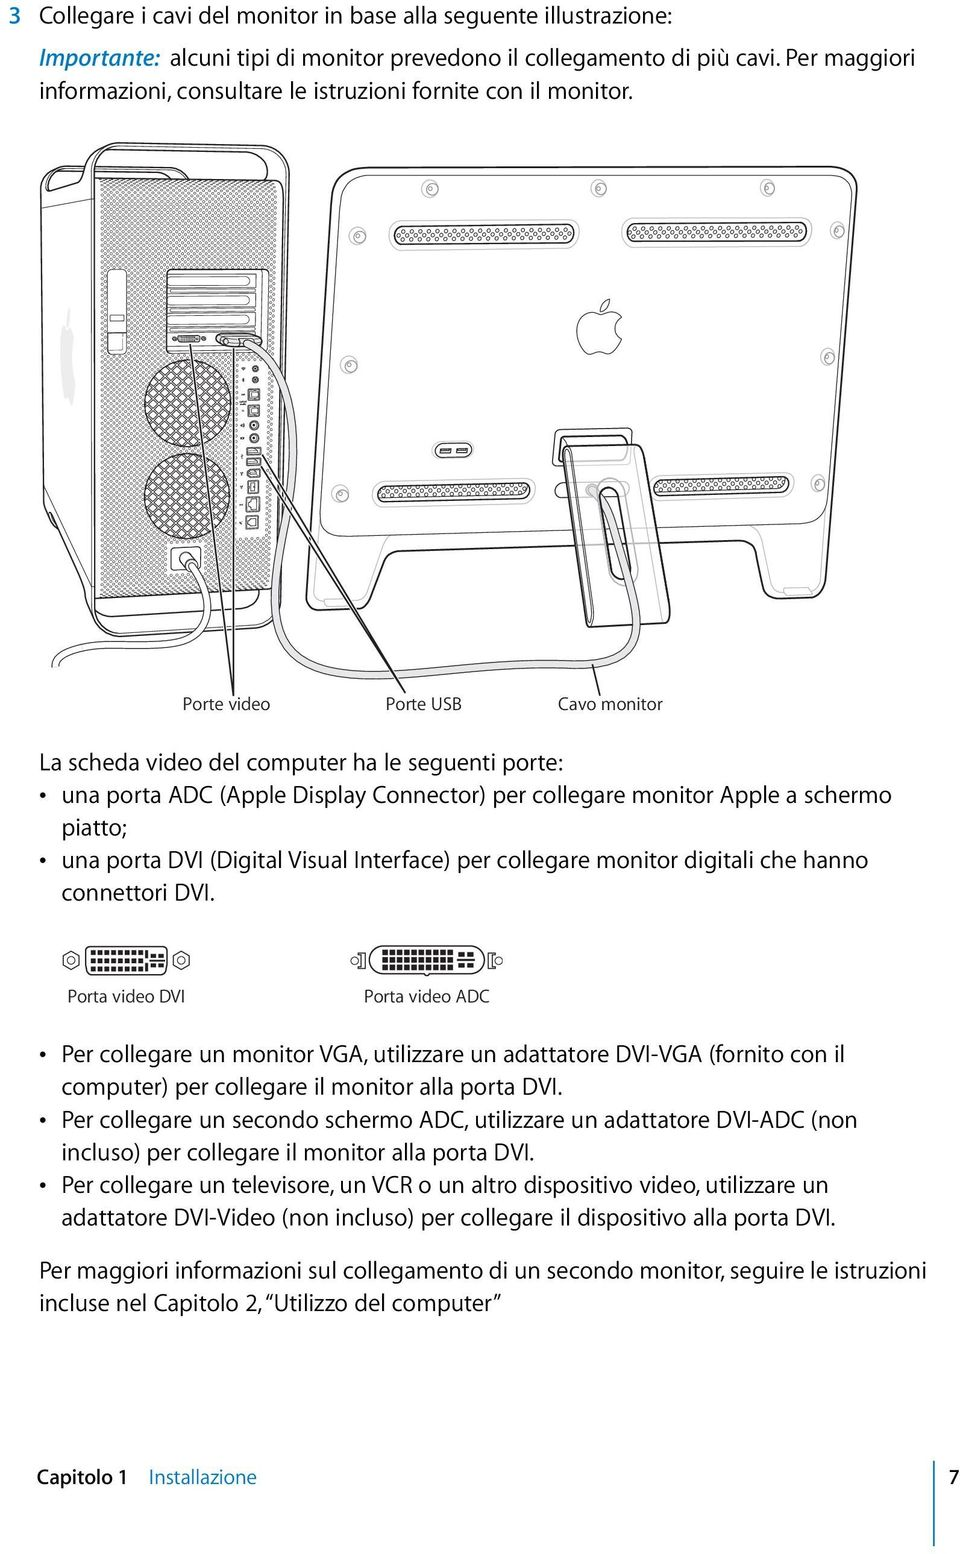 Porte video Porte USB Cavo monitor La scheda video del computer ha le seguenti porte: una porta ADC (Apple Display Connector) per collegare monitor Apple a schermo piatto; una porta DVI (Digital